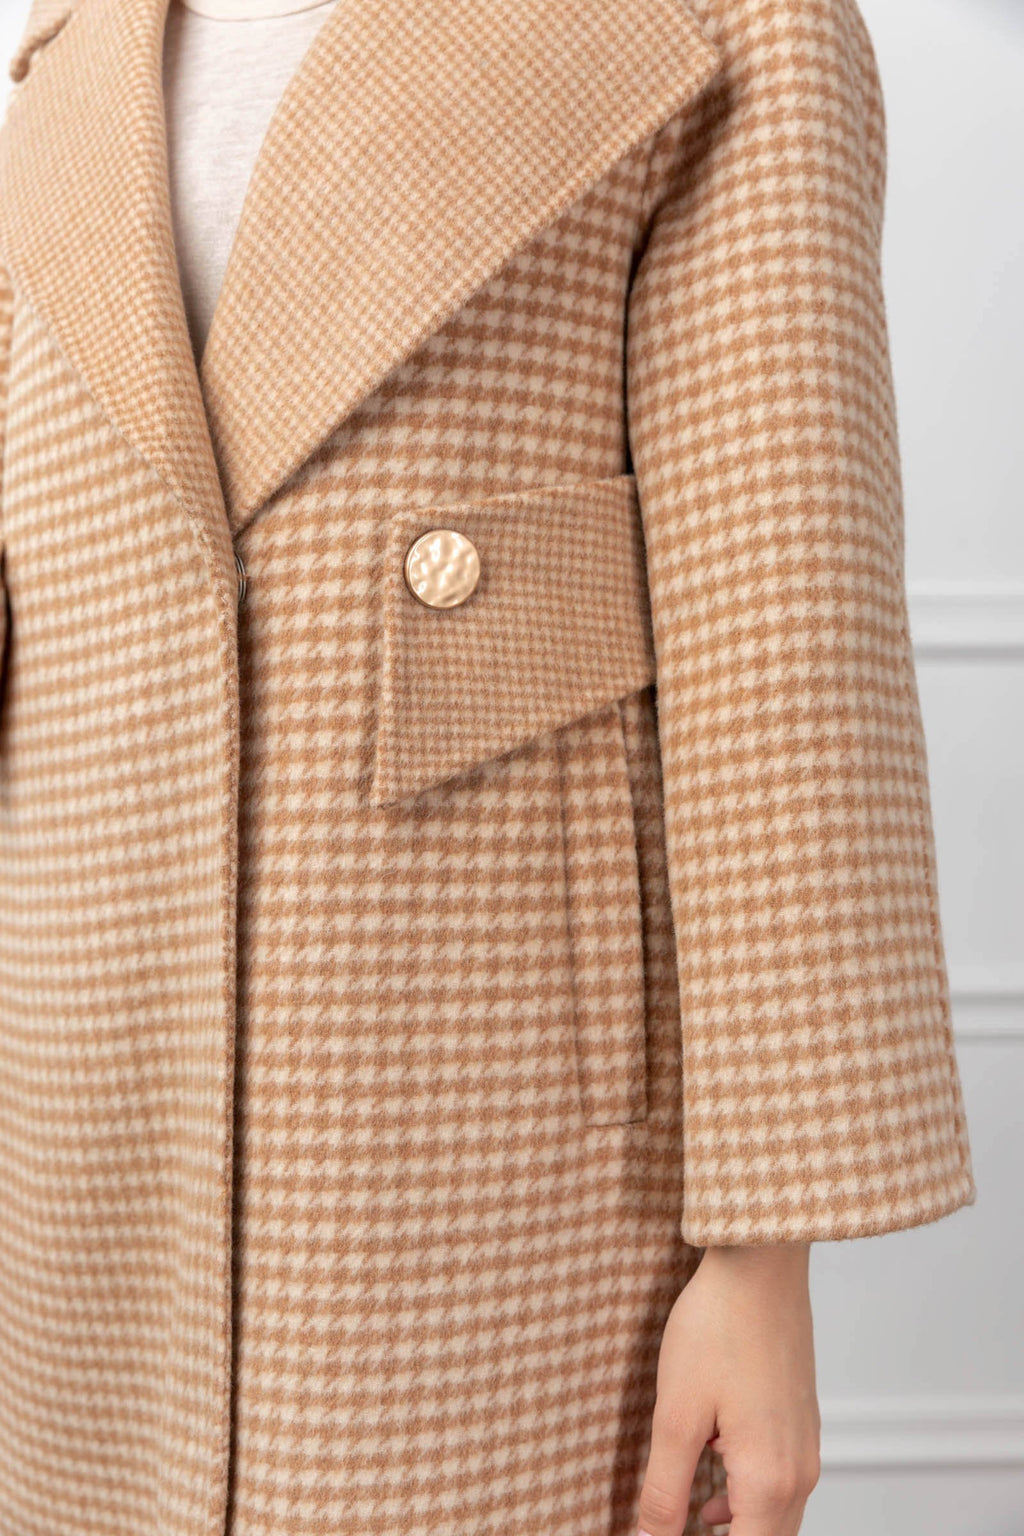 Esme Coat in Coats & Jackets by J.ING - an L.A based women's fashion line